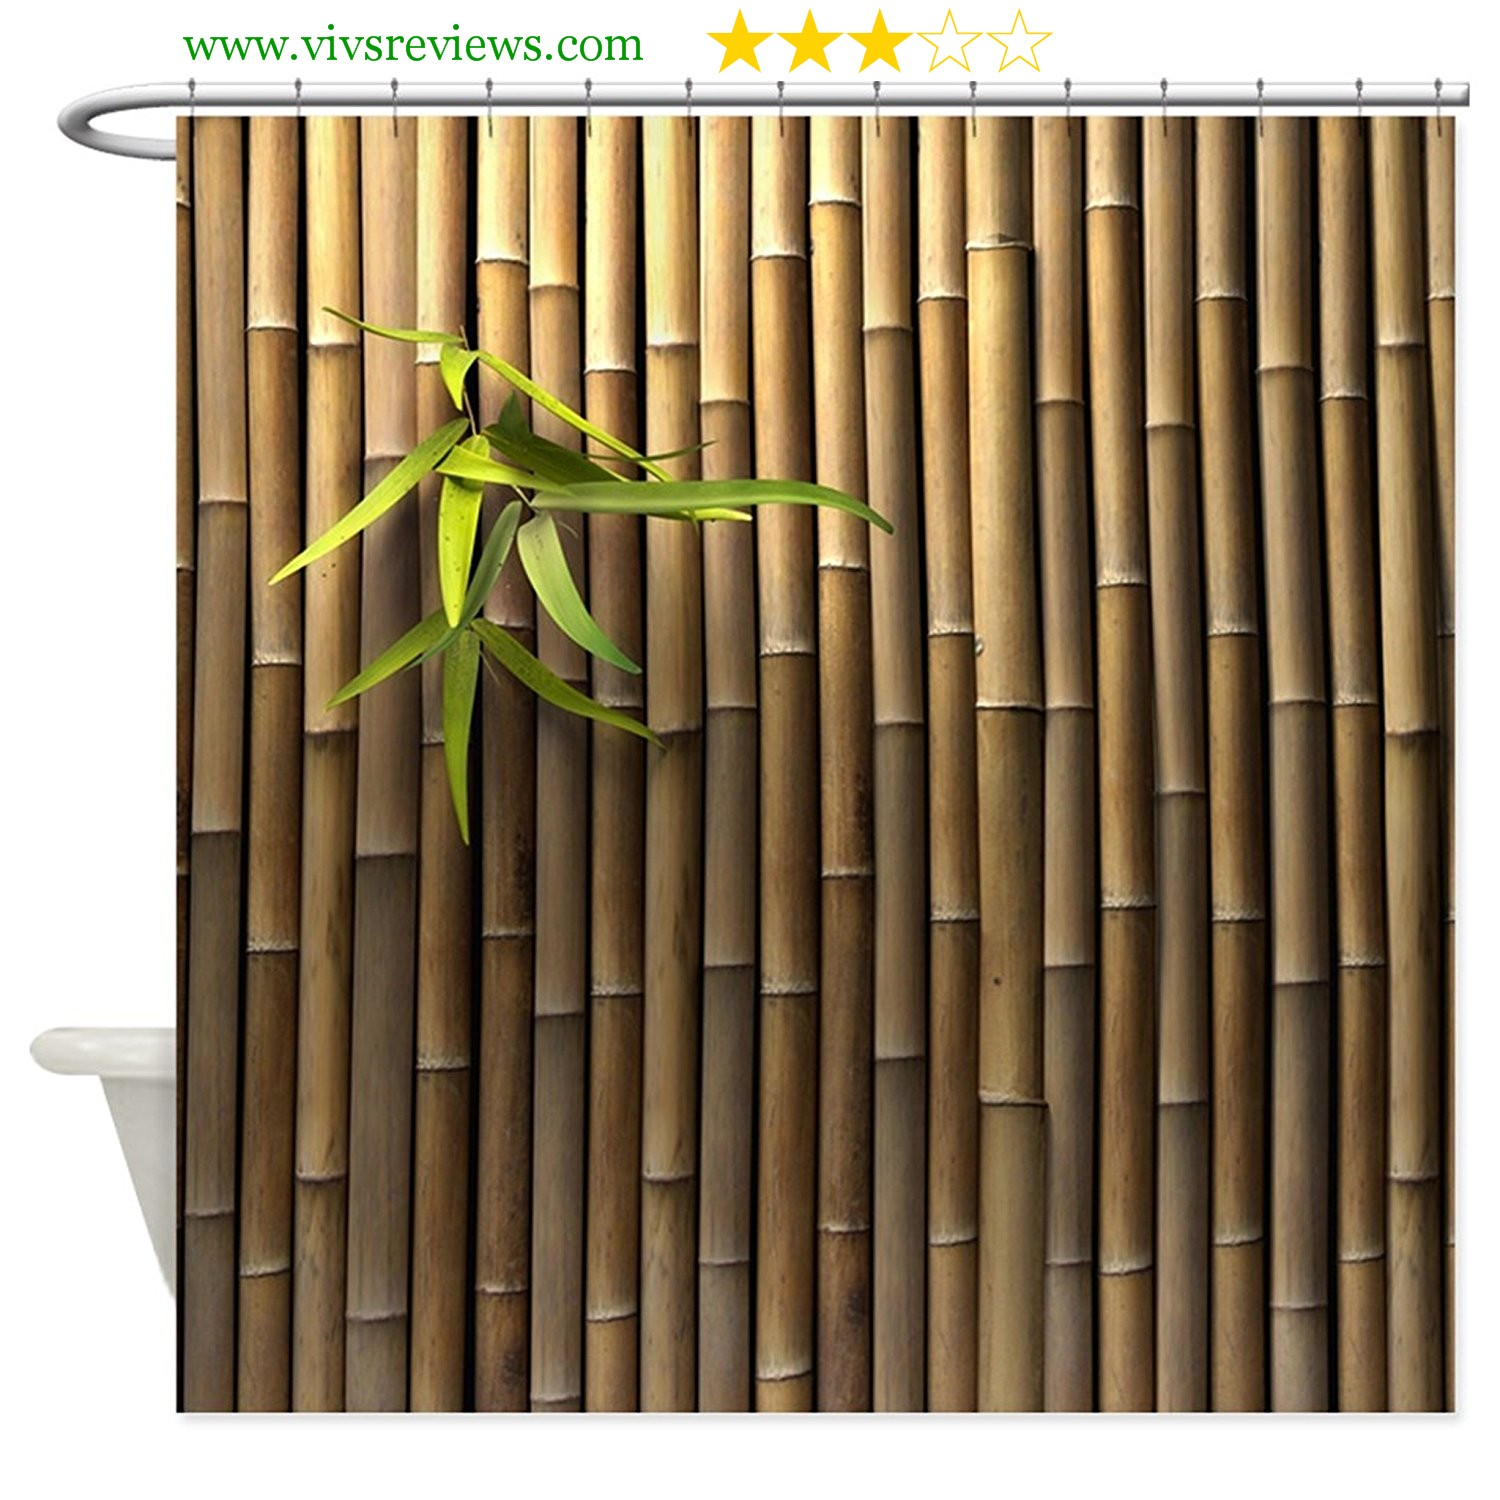 Bamboo shower curtain - If They Can Improve The Quality Of The Colors And Sharpness Of This Image This Can Be A Very Lovely Curtain For Everybody